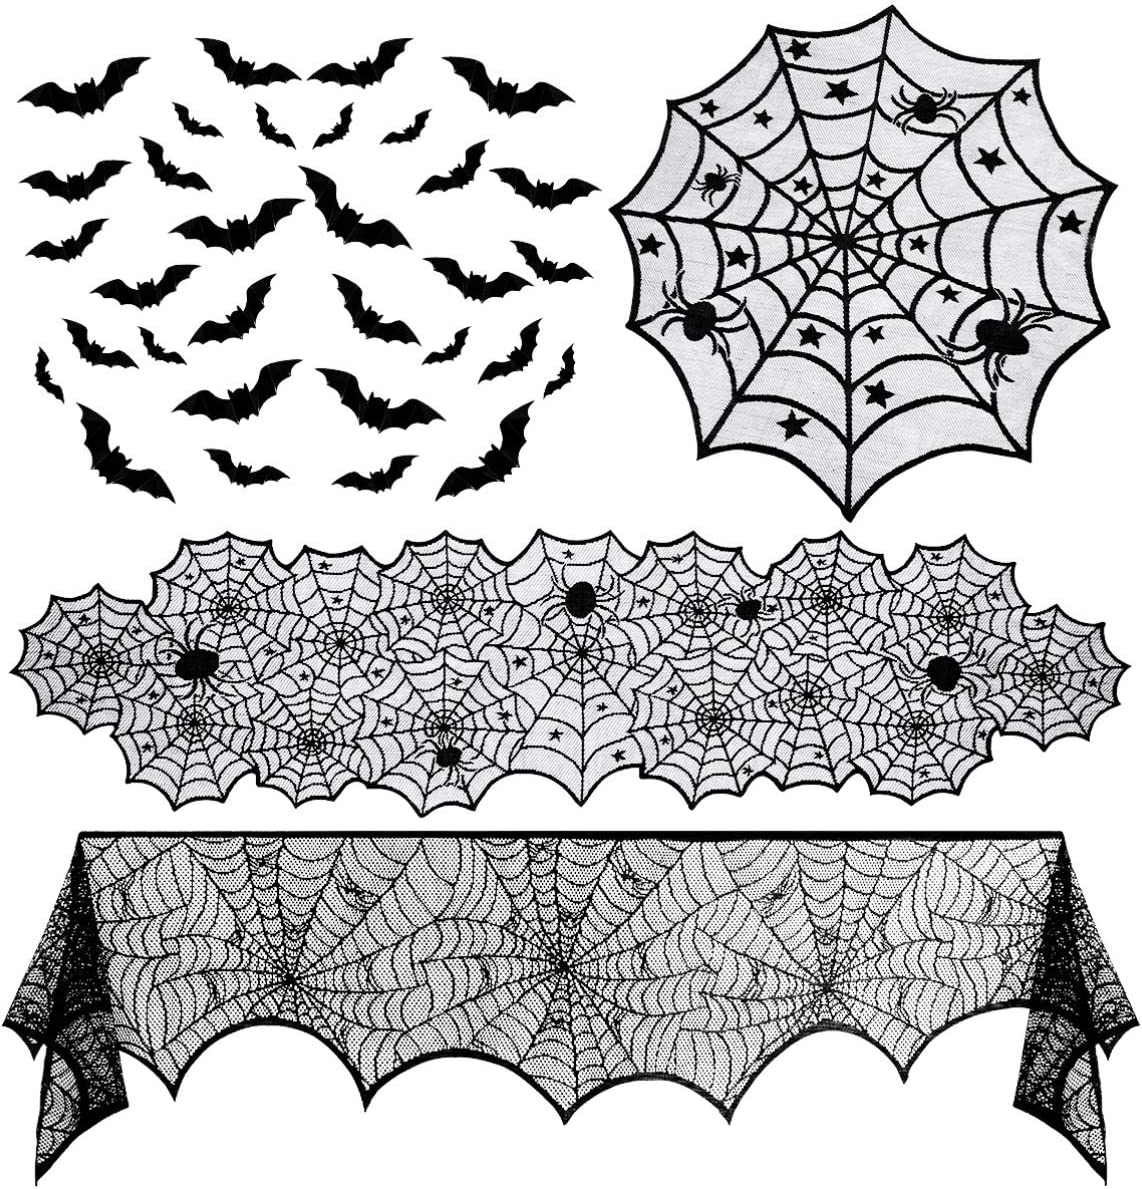 Halloween Party Supplies Set, Halloween Decoration Table Runner, Black Lace Spider Web Table Clothes, Spider Web Lace